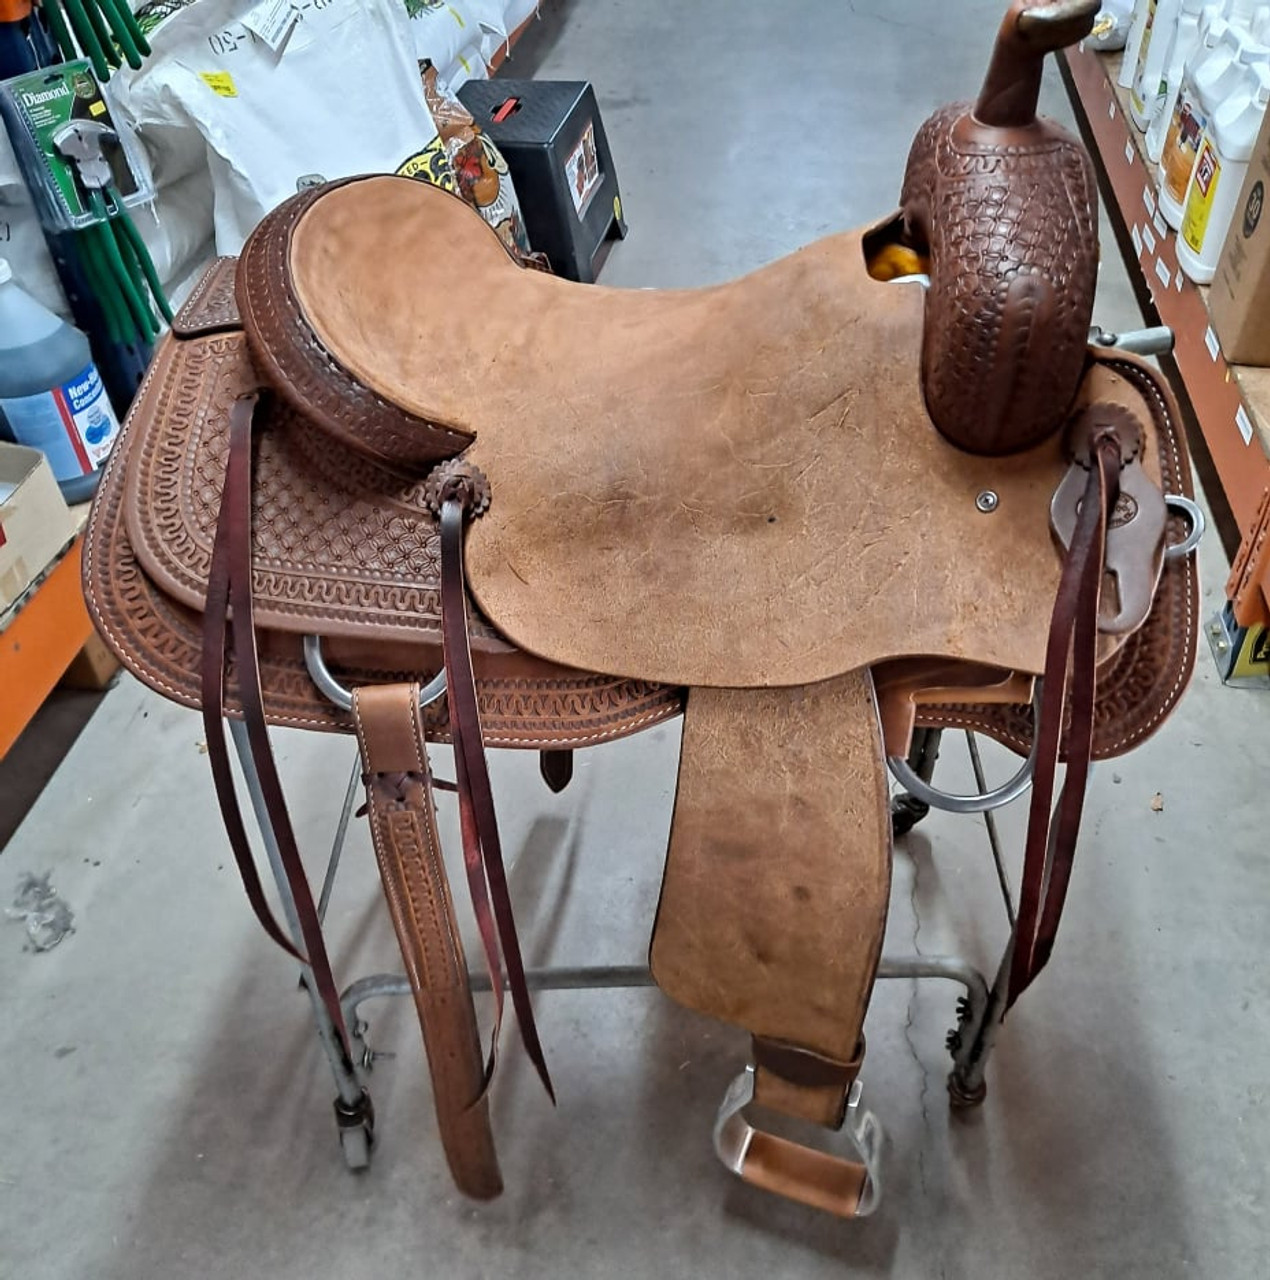 New Ranch Cutter by Fort Worth Saddle Co with 17 inch seat. Well built, hand-tooled ranch cutter. 6 strings, roughout contact points, dark oil finish. Includes latigo and offside, flank billets and flank cinch. Covered by the best warranty in the business. Gullet size is 7 inch, weight is 29lbs, and skirt is 29 inch. Made in USA. Limited lifetime warranty.  S1410